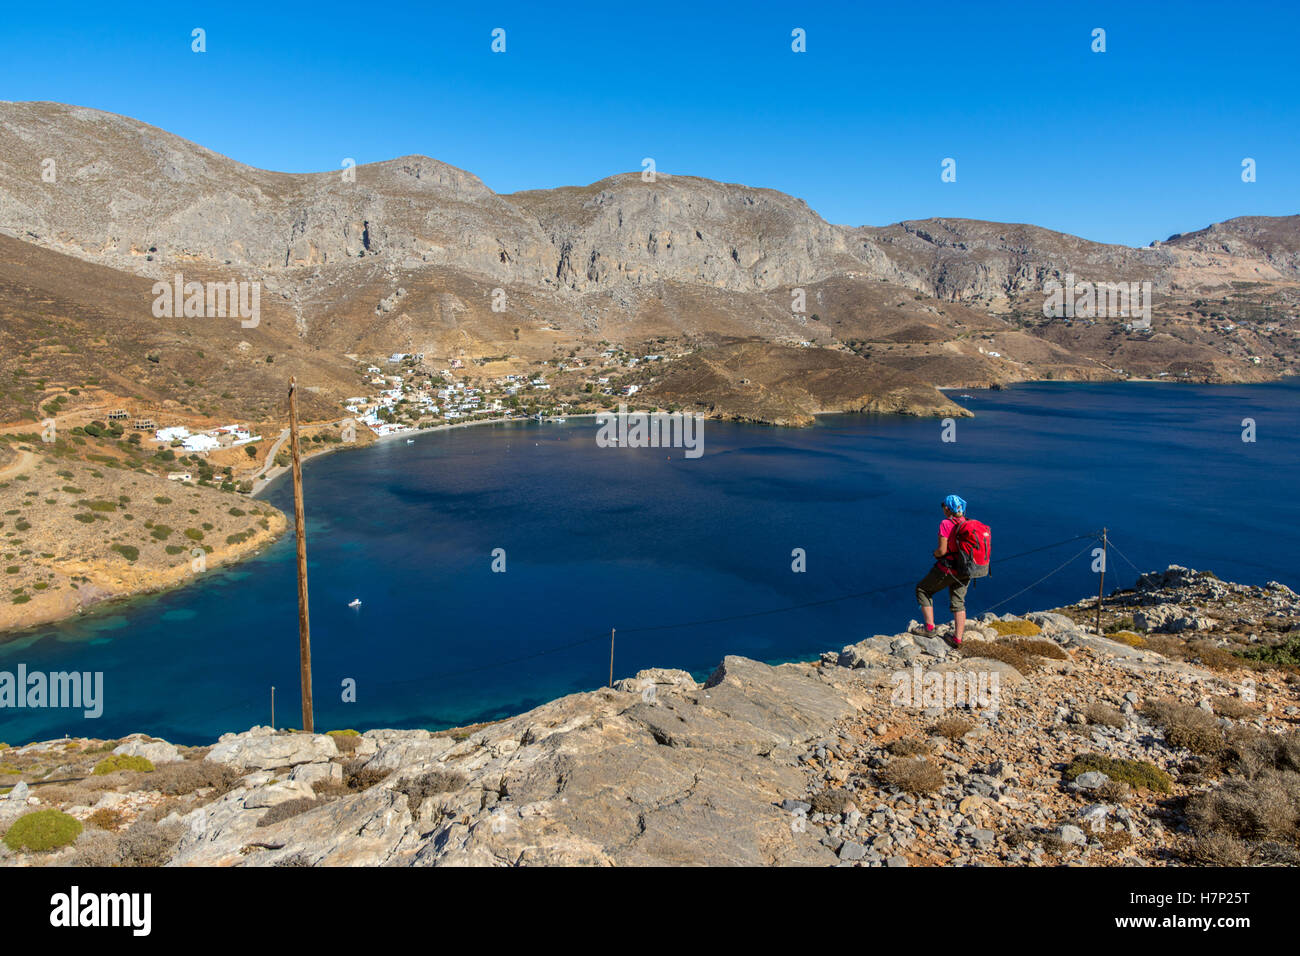 Female walker with red rucksack against sea, Beach blue sea and mountains, Emborios Bay, Kalymnos - Stock Image